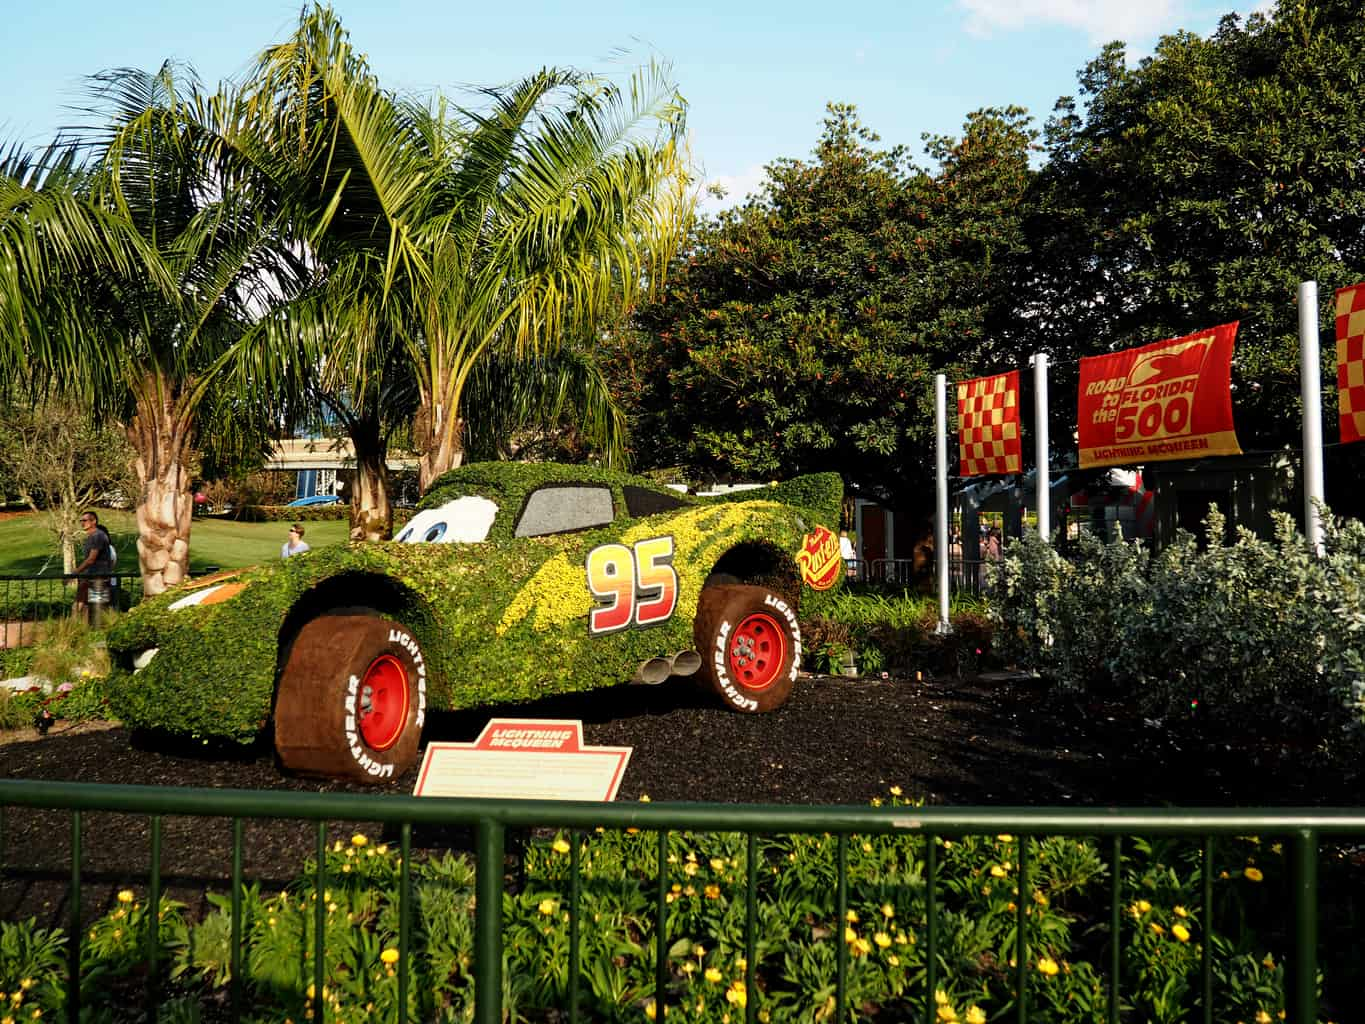 How to Avoid Parking Fees at Walt Disney World